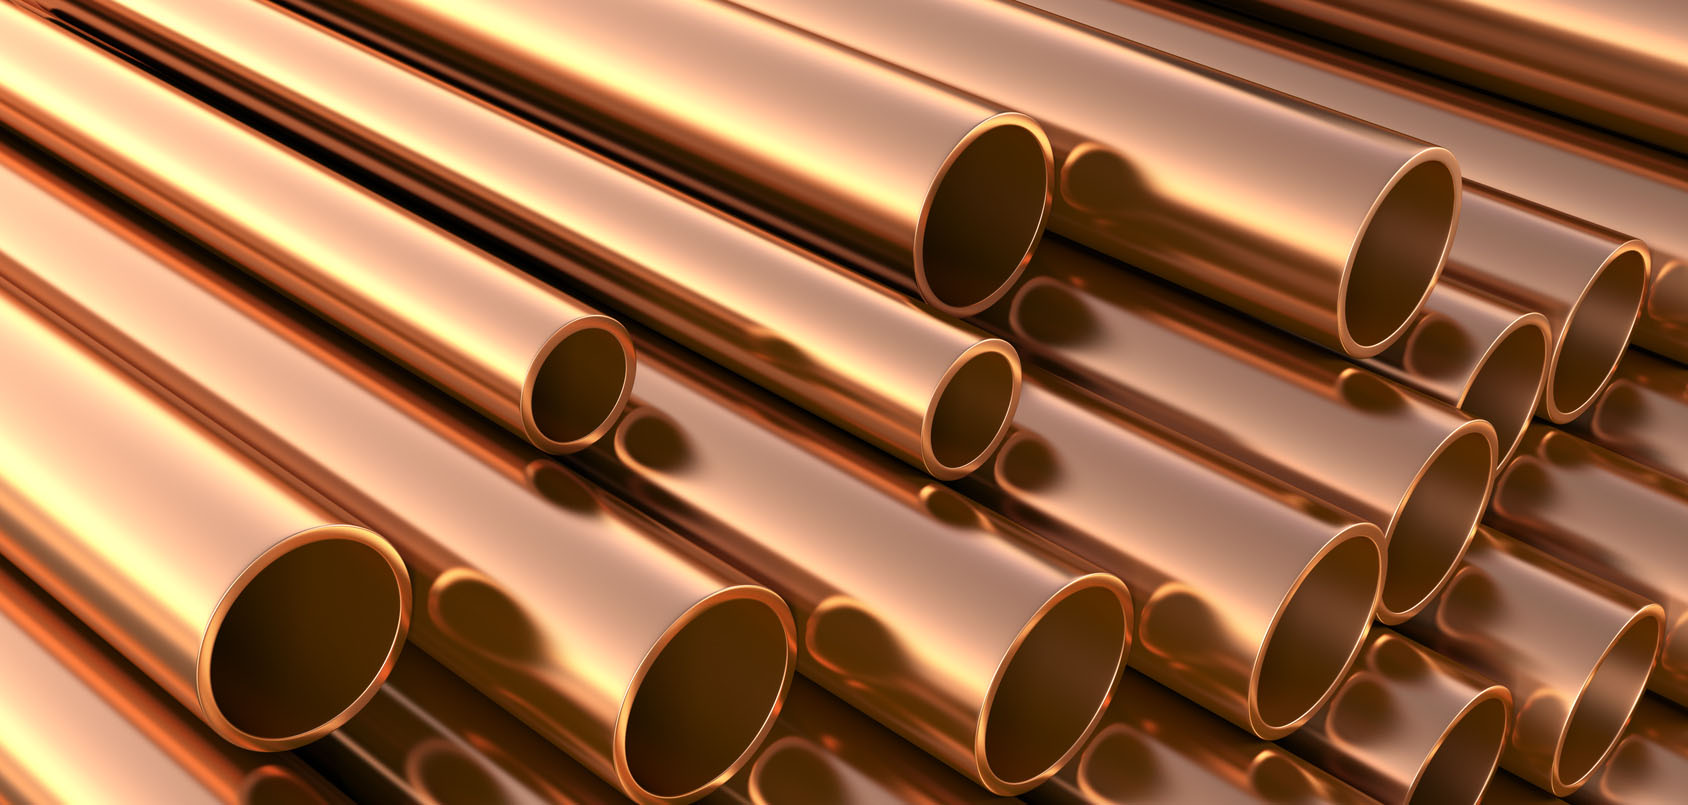 COPPER NICKEL PIPES & TUBE